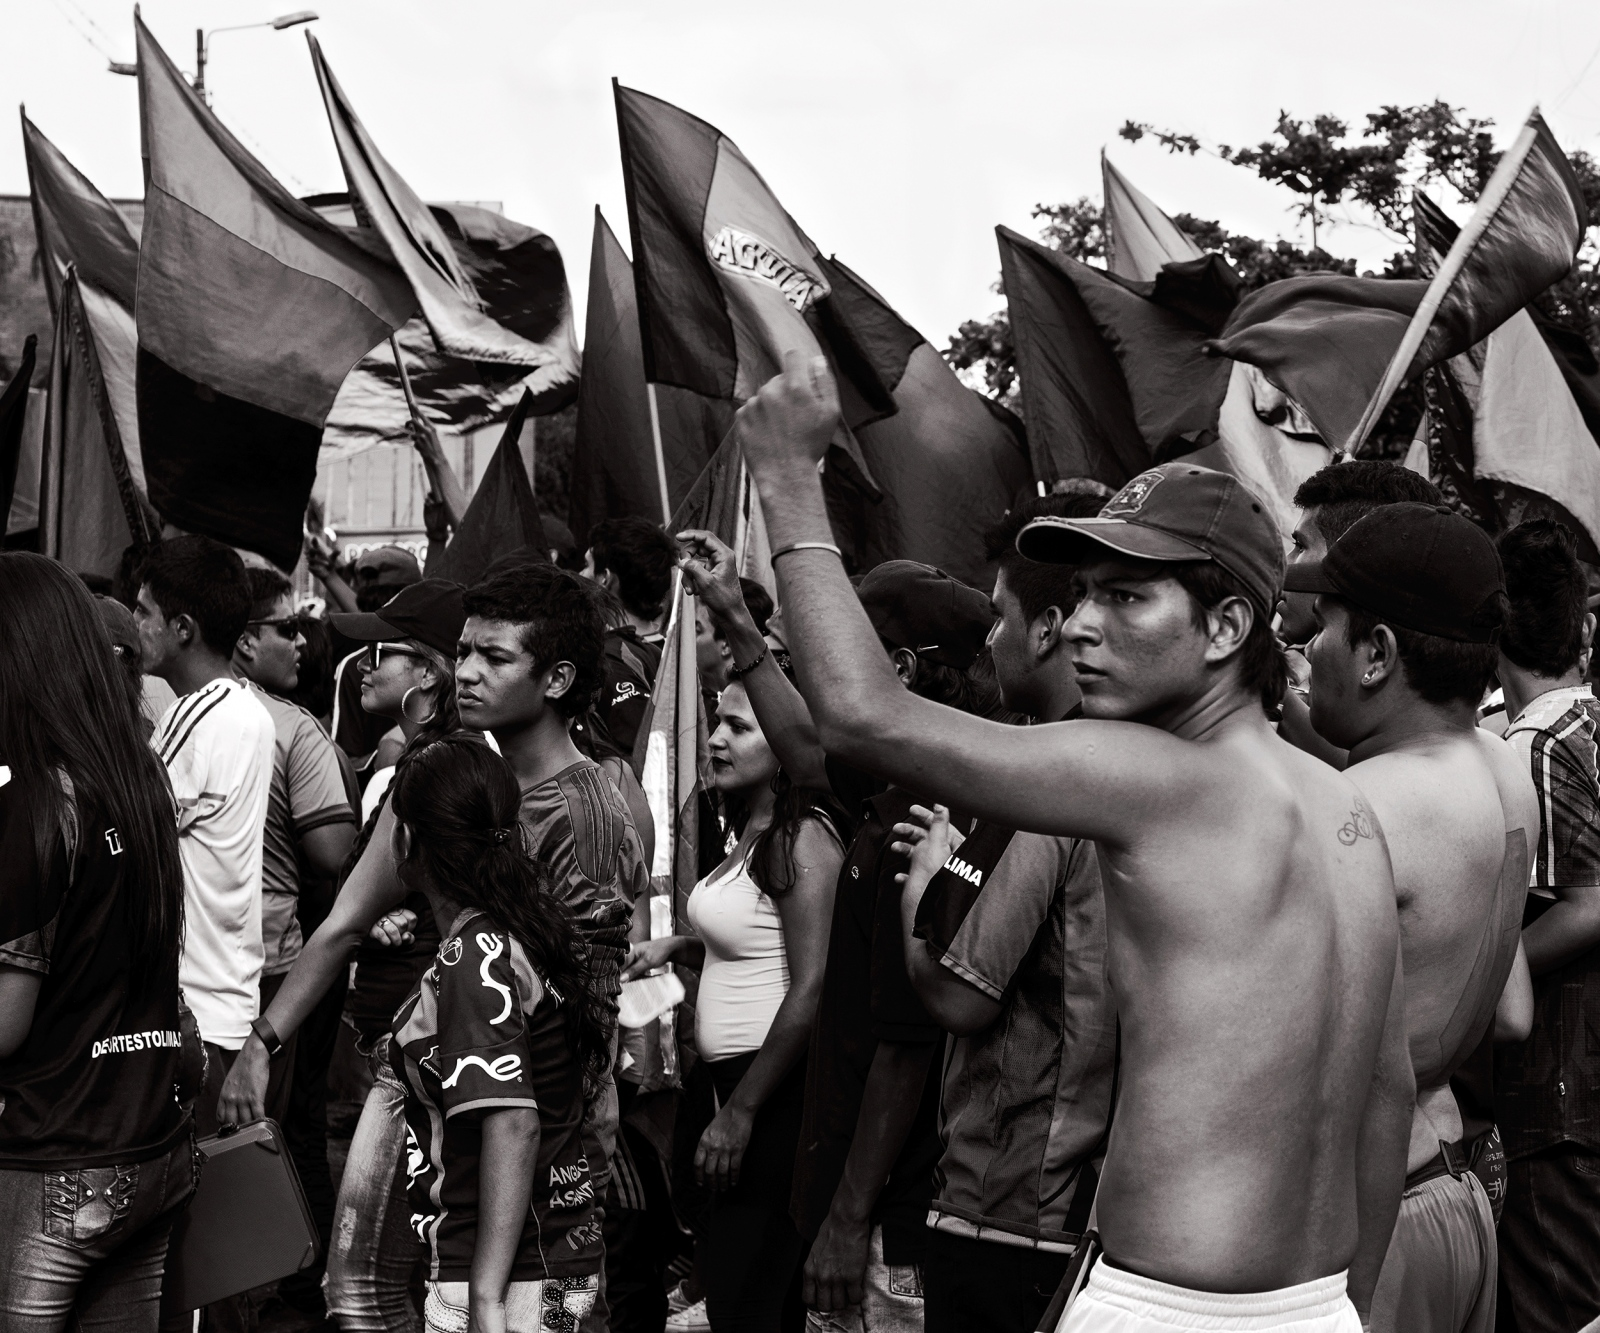 Art and Documentary Photography - Loading protesta_Ibague_14.jpg